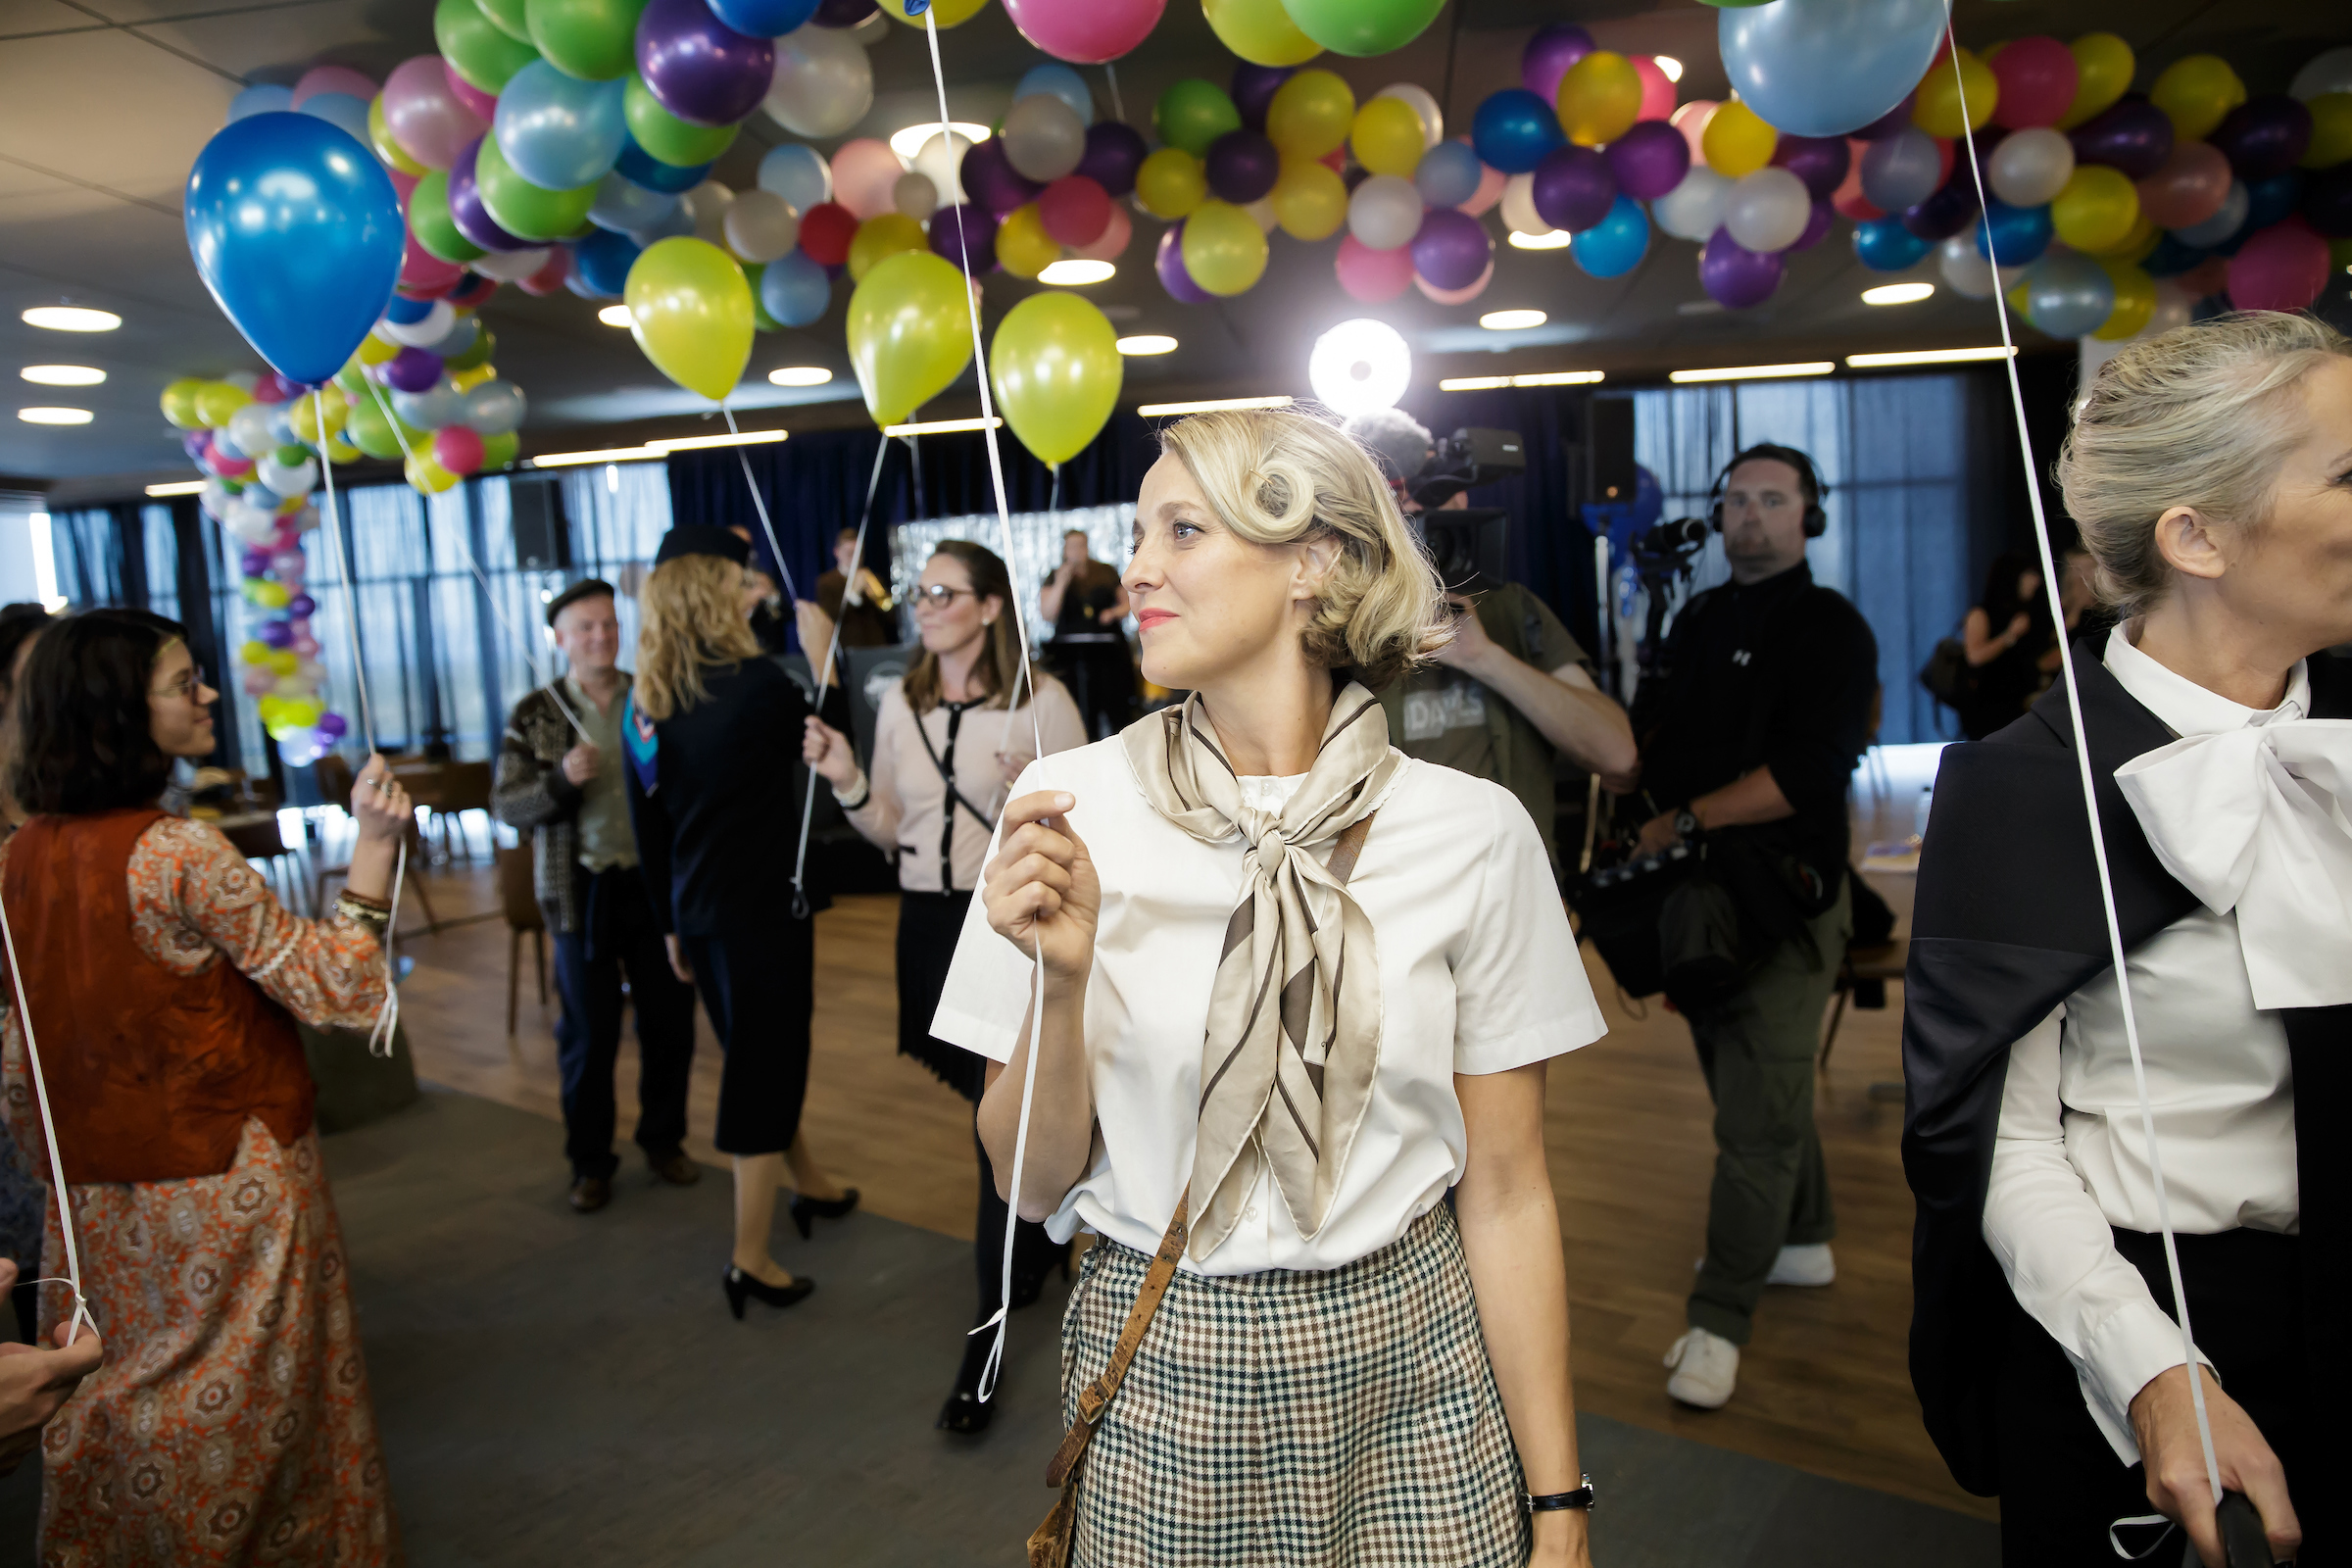 a woman stands in a somewhat crowded room holding a baloon